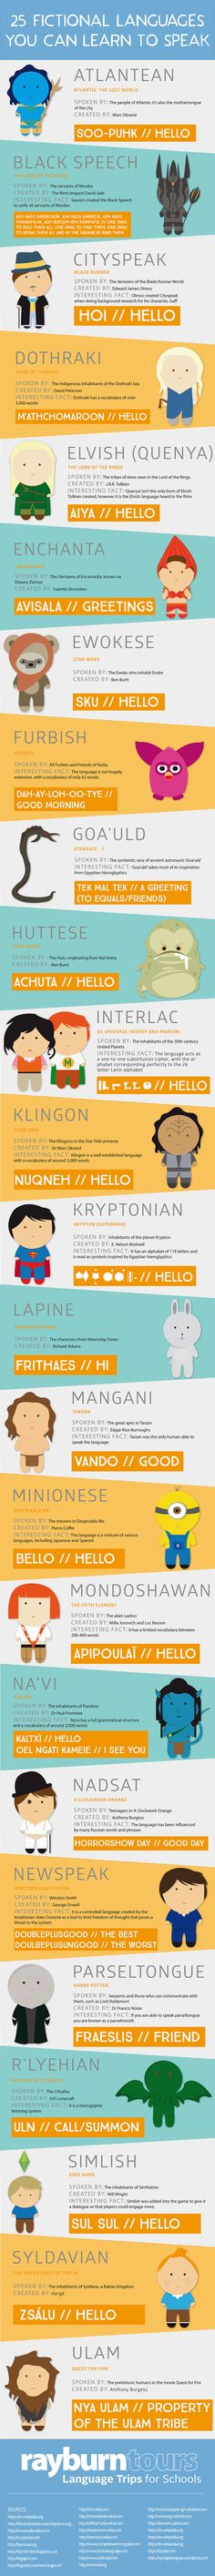 25 Fictional Languages you Can Learn to Speak #infographic #Language #Education